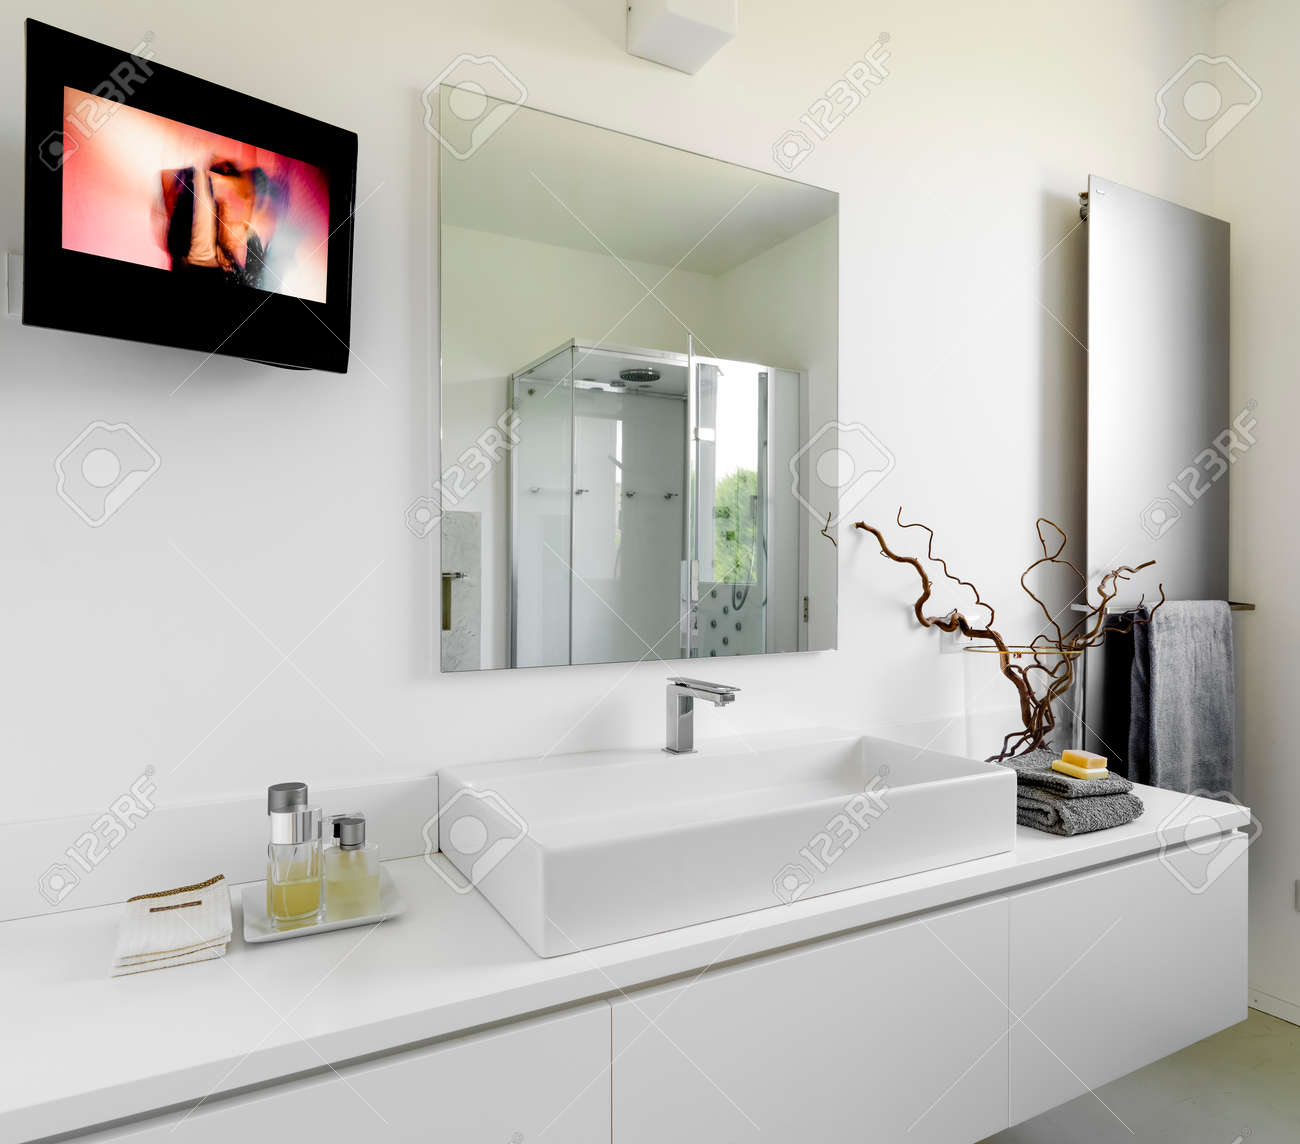 Detail Of Washbasin In A Modern Bathroom With Television And.. Stock ...